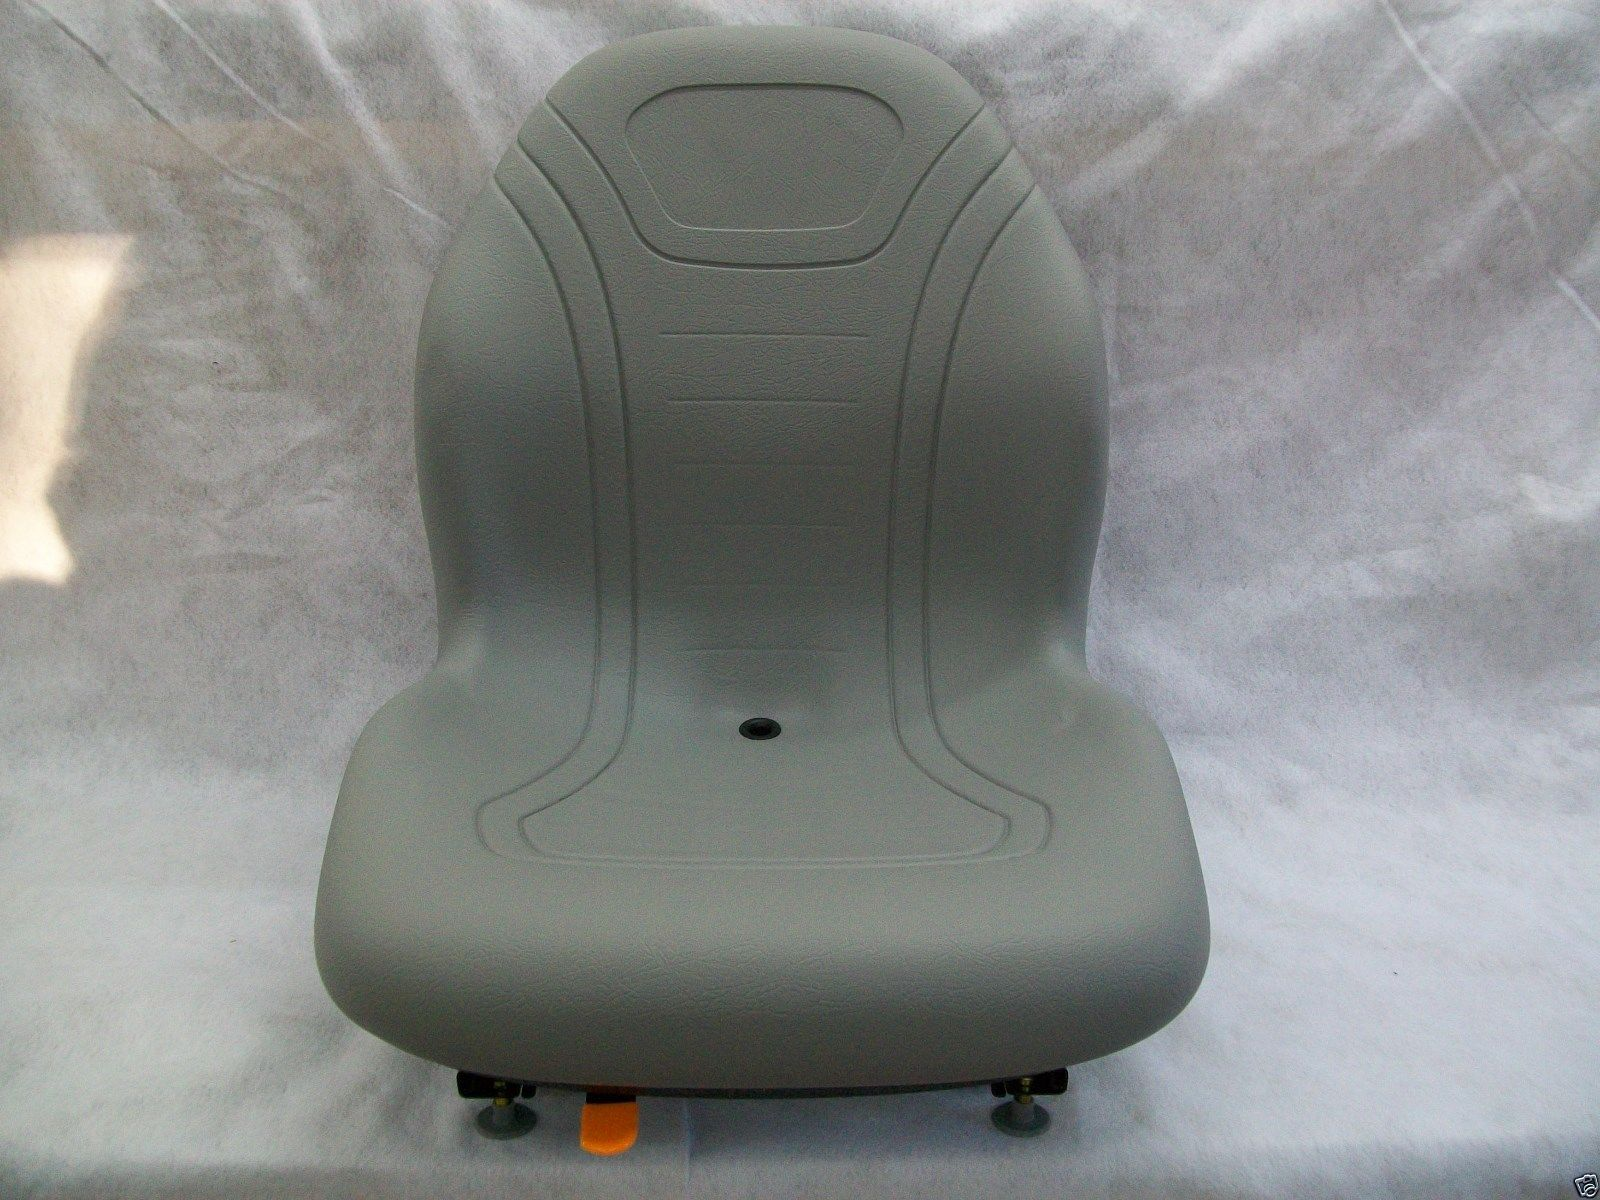 hight resolution of gray case skid steer seat 410 420 420ct 430 435 440 440ct 445 445ct 450 450ct 465 1530 1816 1818 1825 1830 1835 1835b 1835c 1838 1840